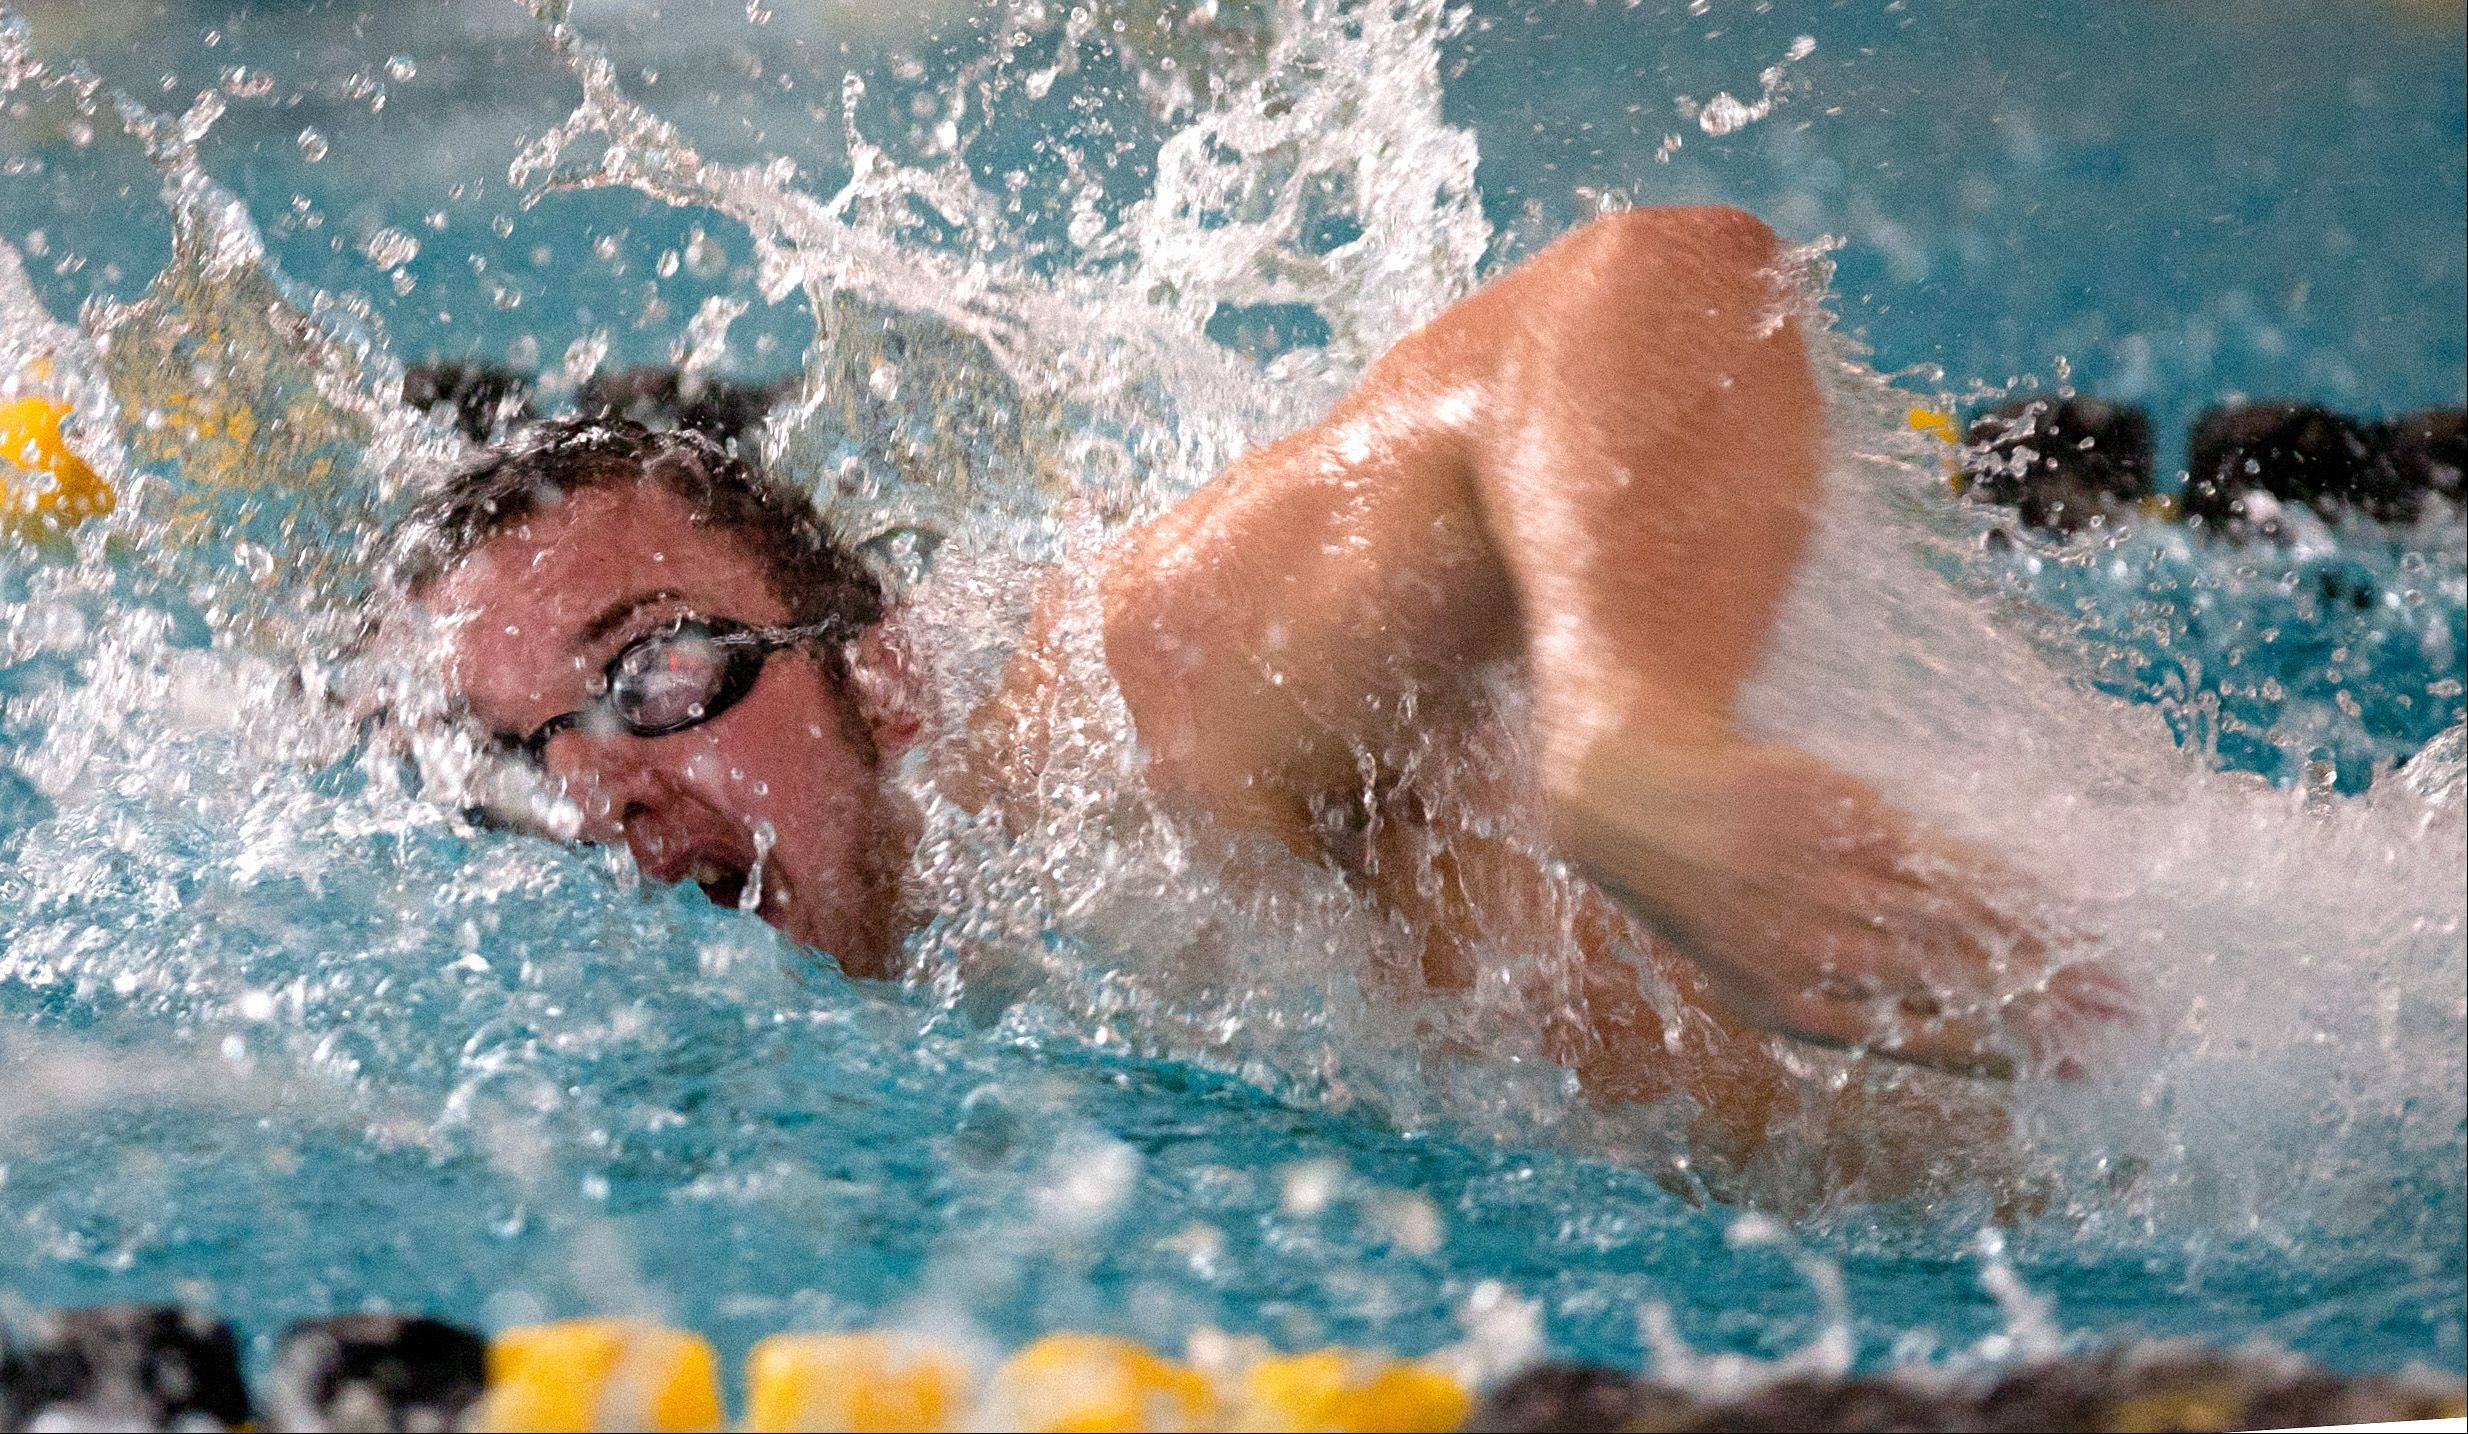 Alex Walter of Metea Valley High School swims the 100 yard freestyle at the Mustang Swim and Dive Invite, hosted by Metea Valley High School.